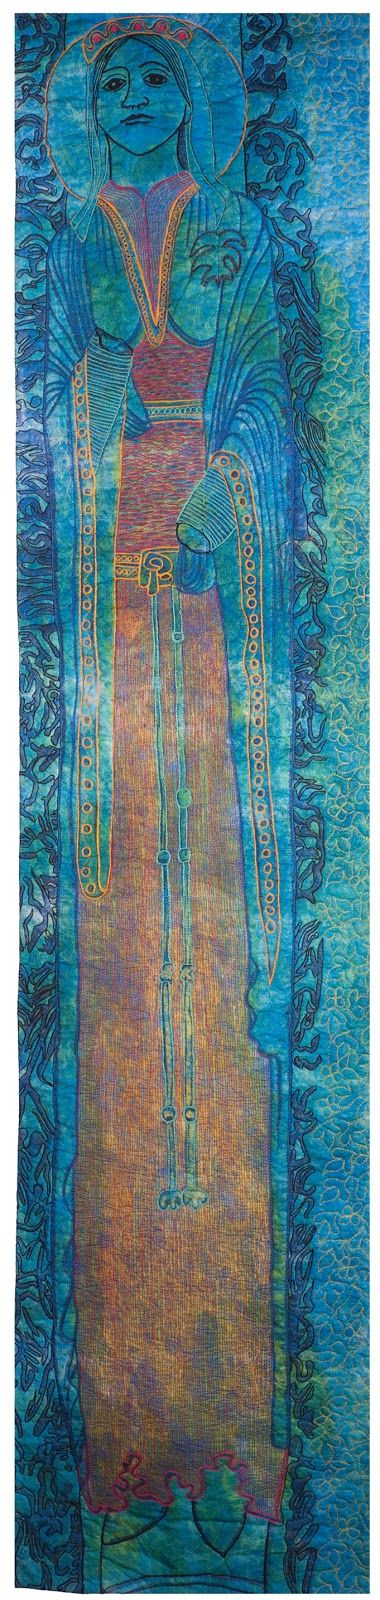 Musings of a textile itinerant: Work For Sale Including Work From My book Musing in Textile; France